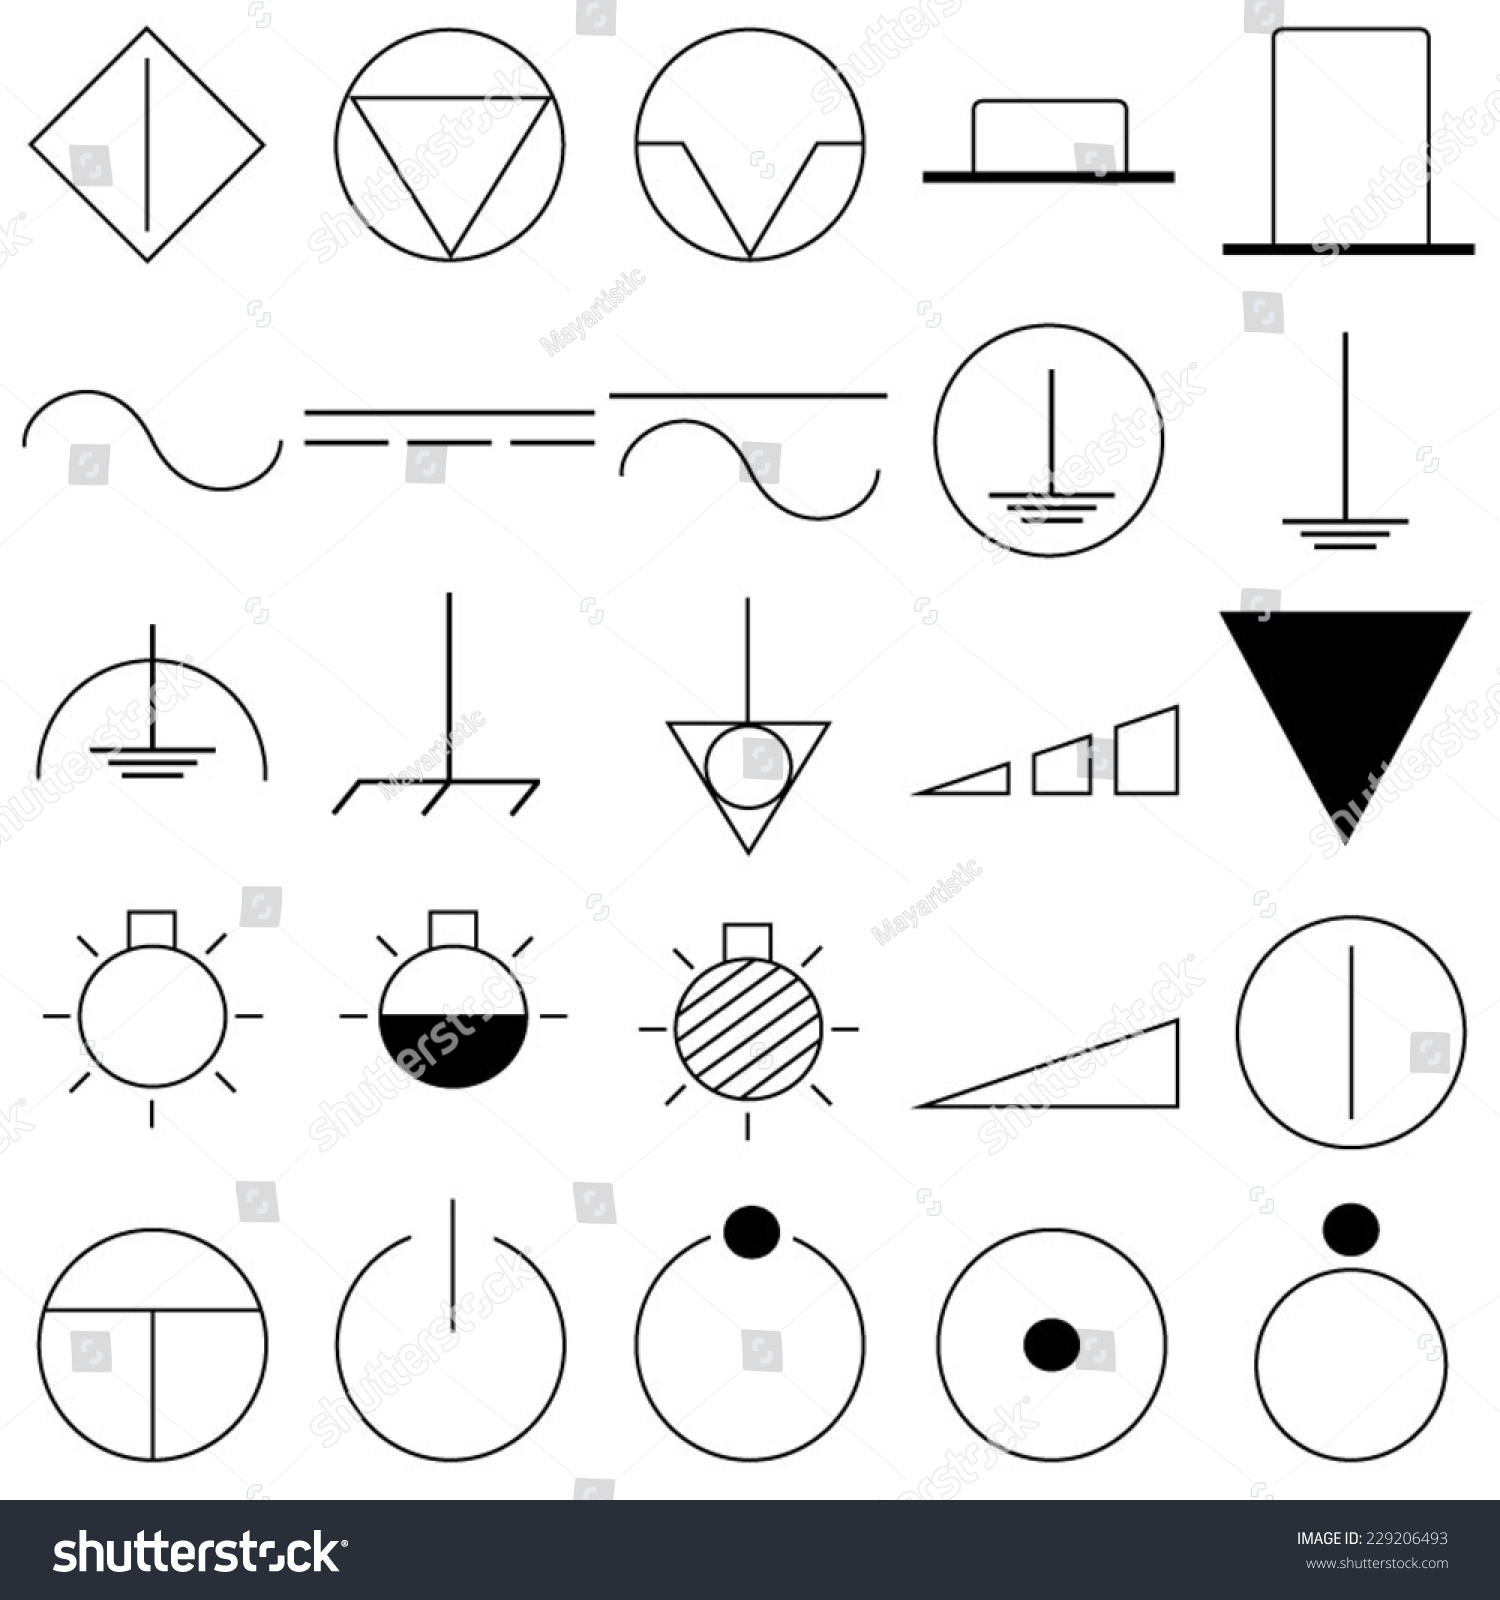 Electrical Symbols Icons Stock Photo (Photo, Vector, Illustration ...